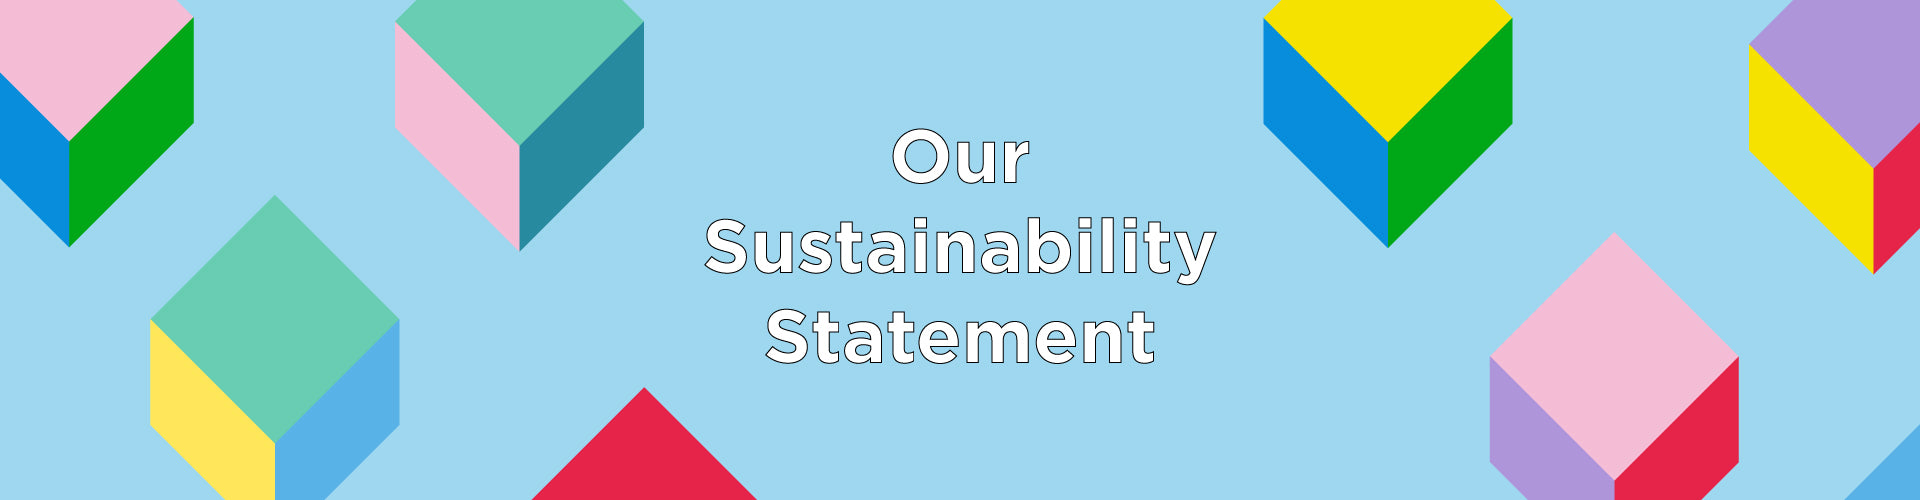 Our Sustainability Statement